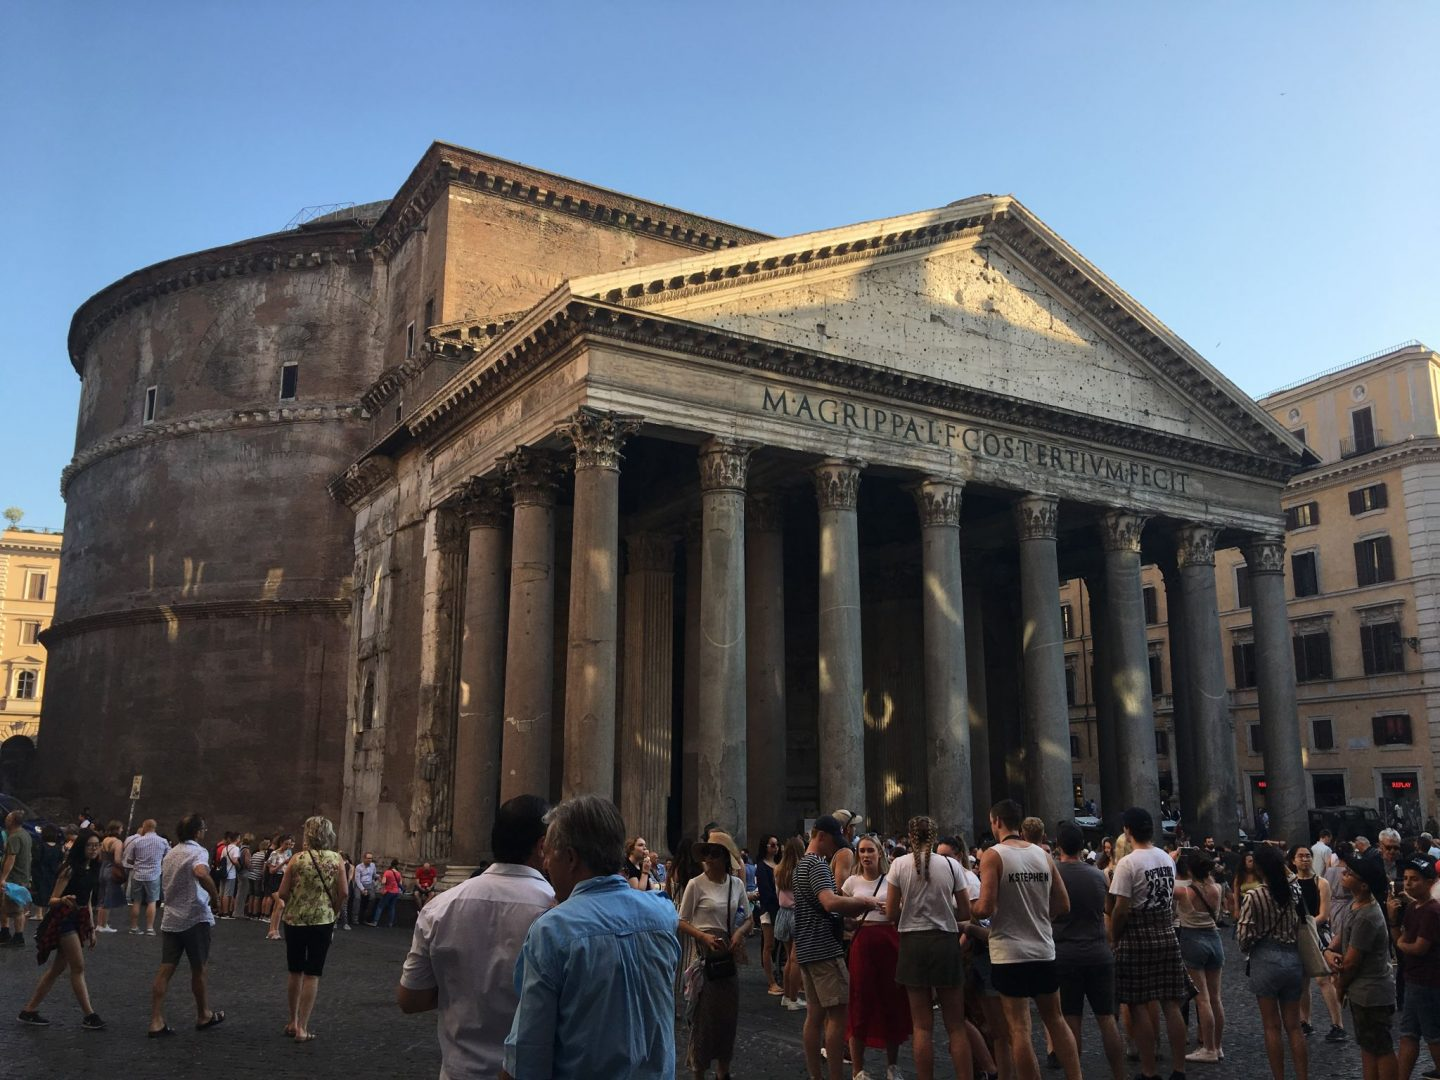 The Pantheon in Rome was built 2000 years ago by emperor Hadrian.